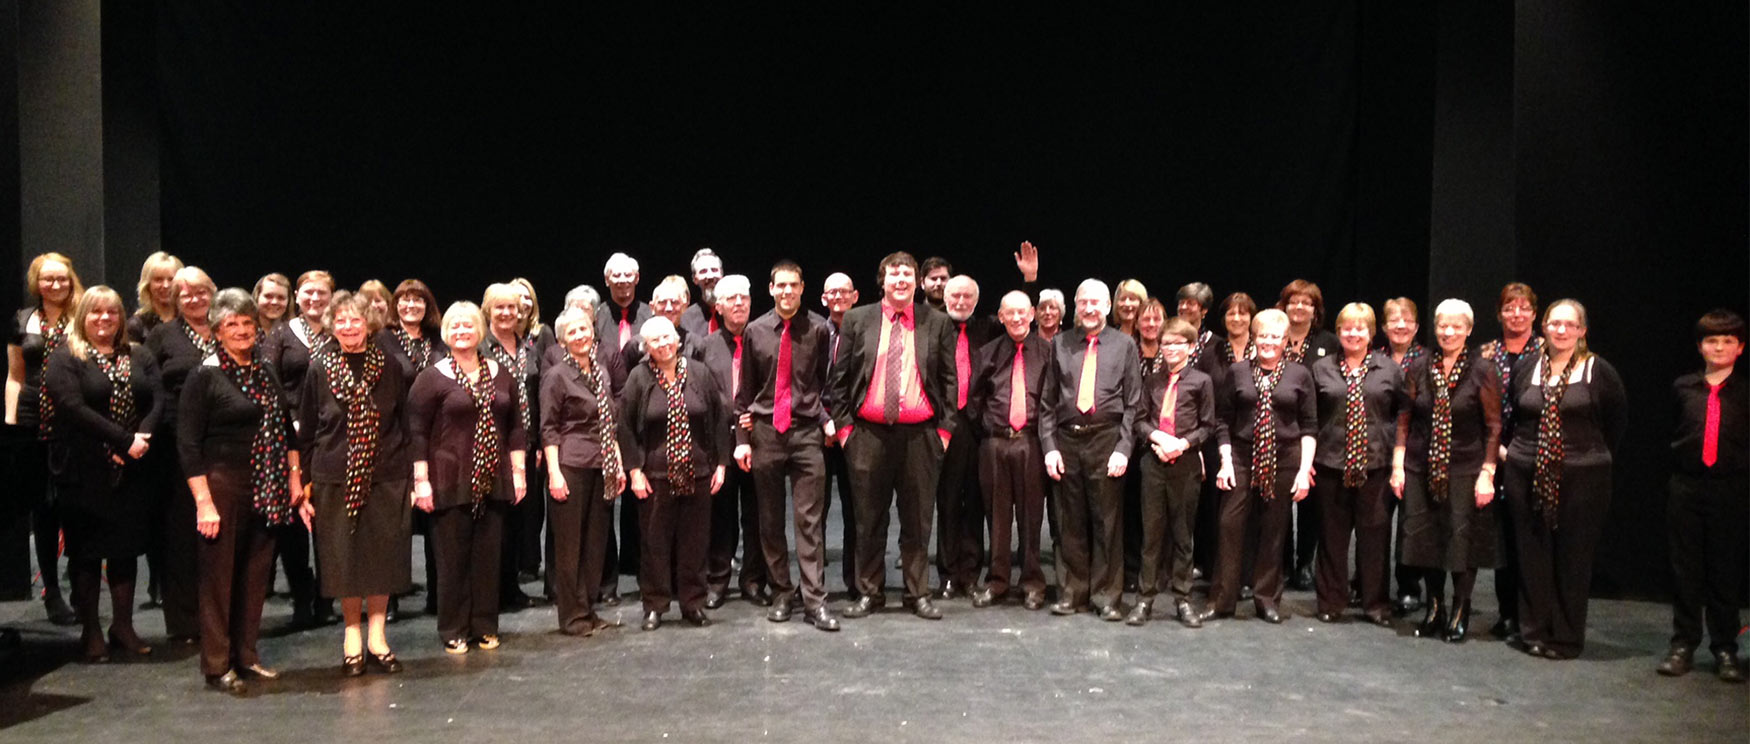 Coleford Community Choir at Hereford Performing Arts Festival